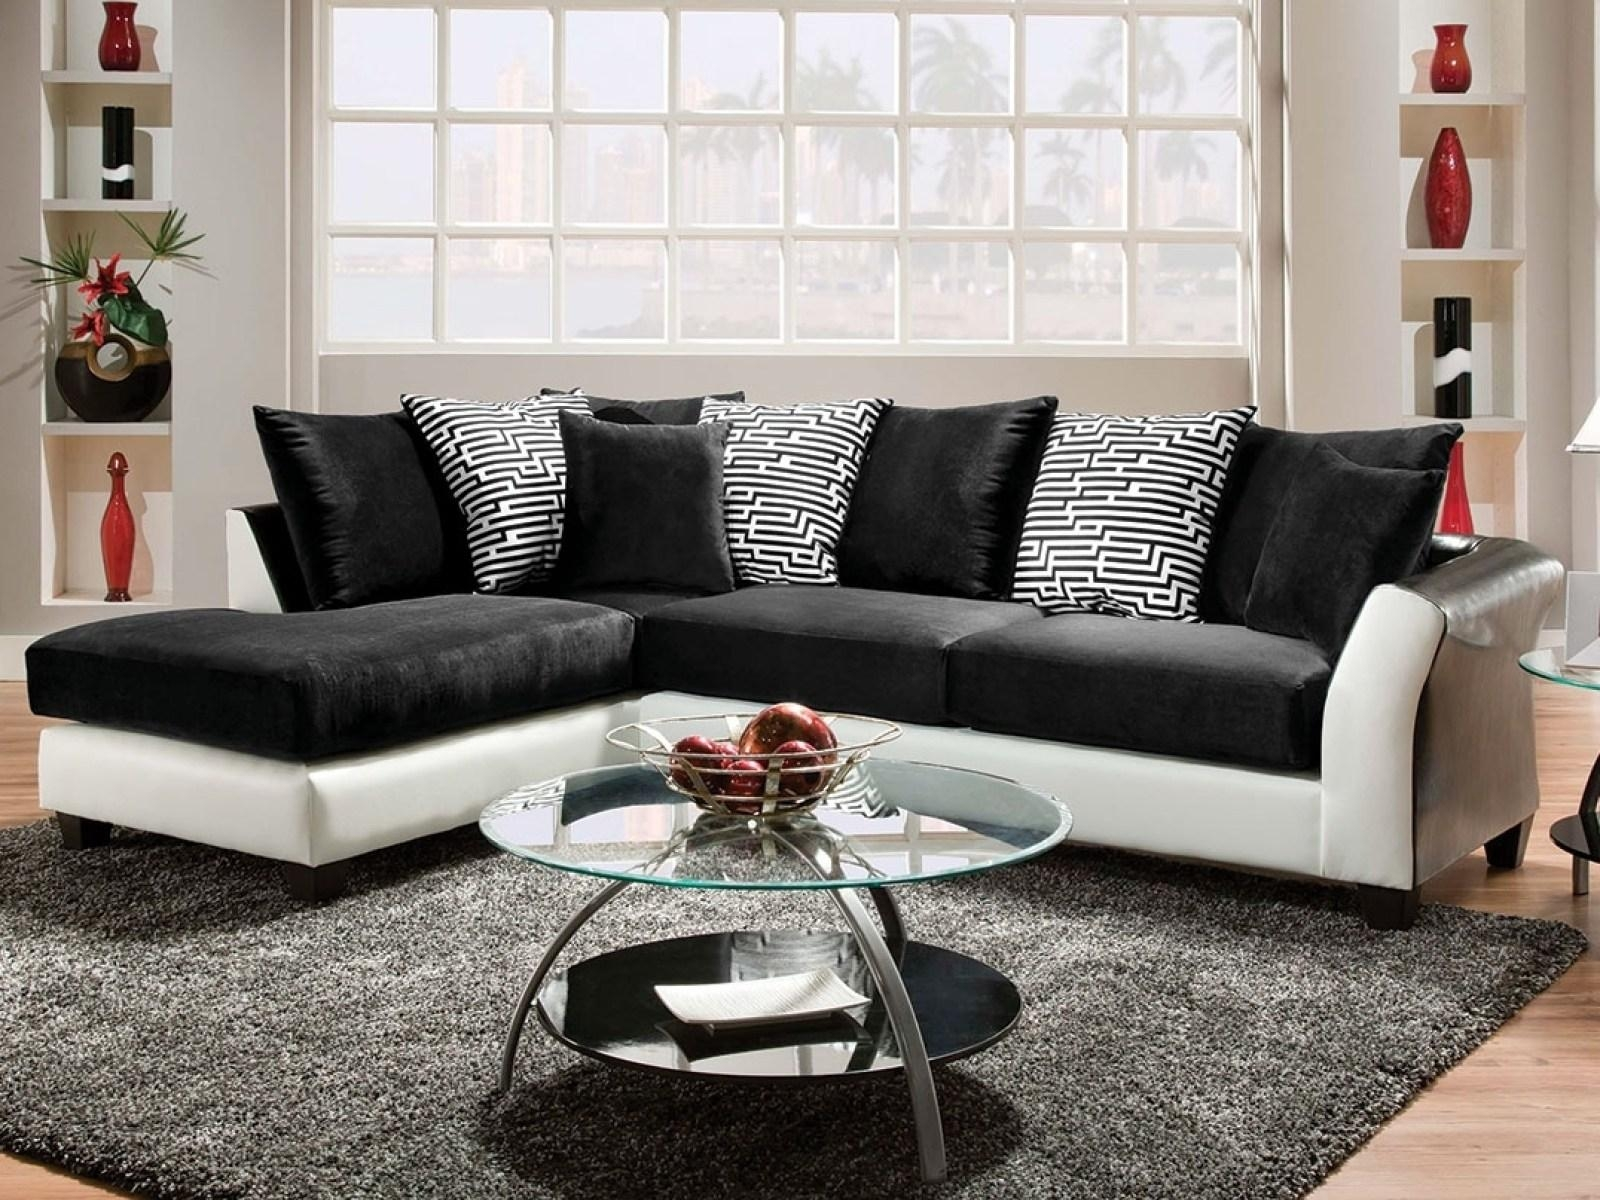 ☆▻ Sofa : 28 3032C2 Inside 89 Wonderful Black And White Sofa Set Within Black And White Sofas (View 5 of 20)